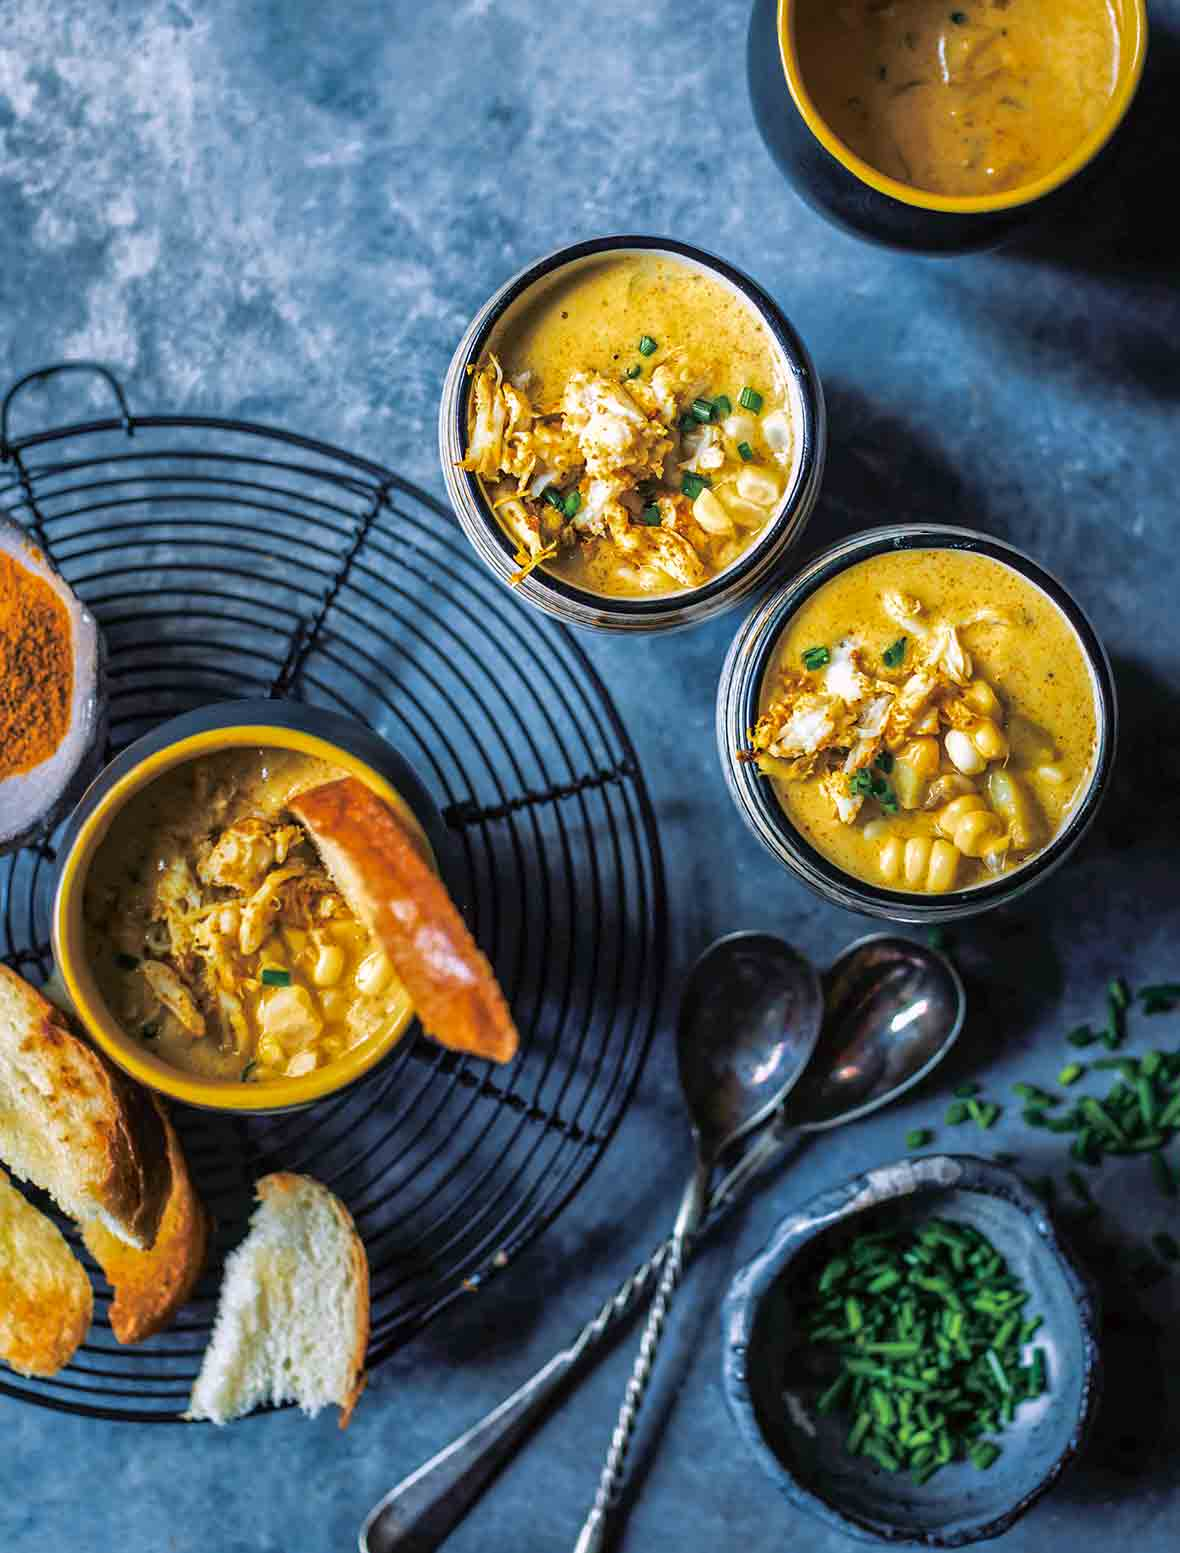 Four bowls of curried crab corn chowder, filled with crab, corn, and a curried broth, on bread and spoons nearby